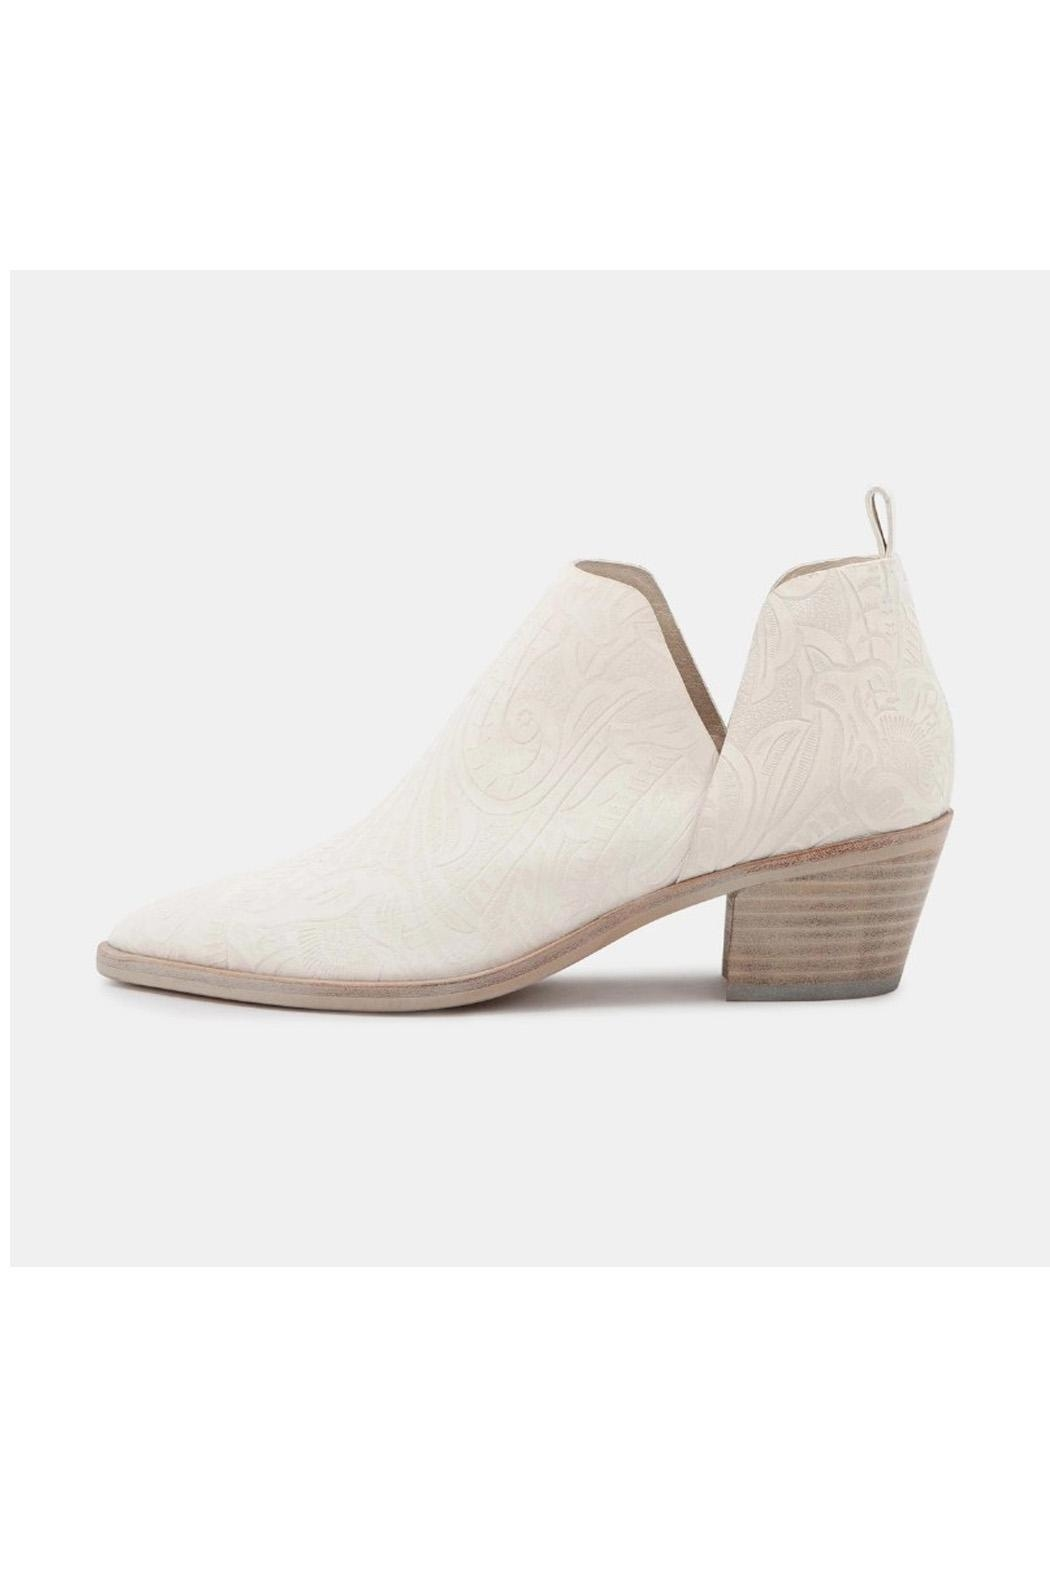 Dolce Vita White Leather Booties - Main Image